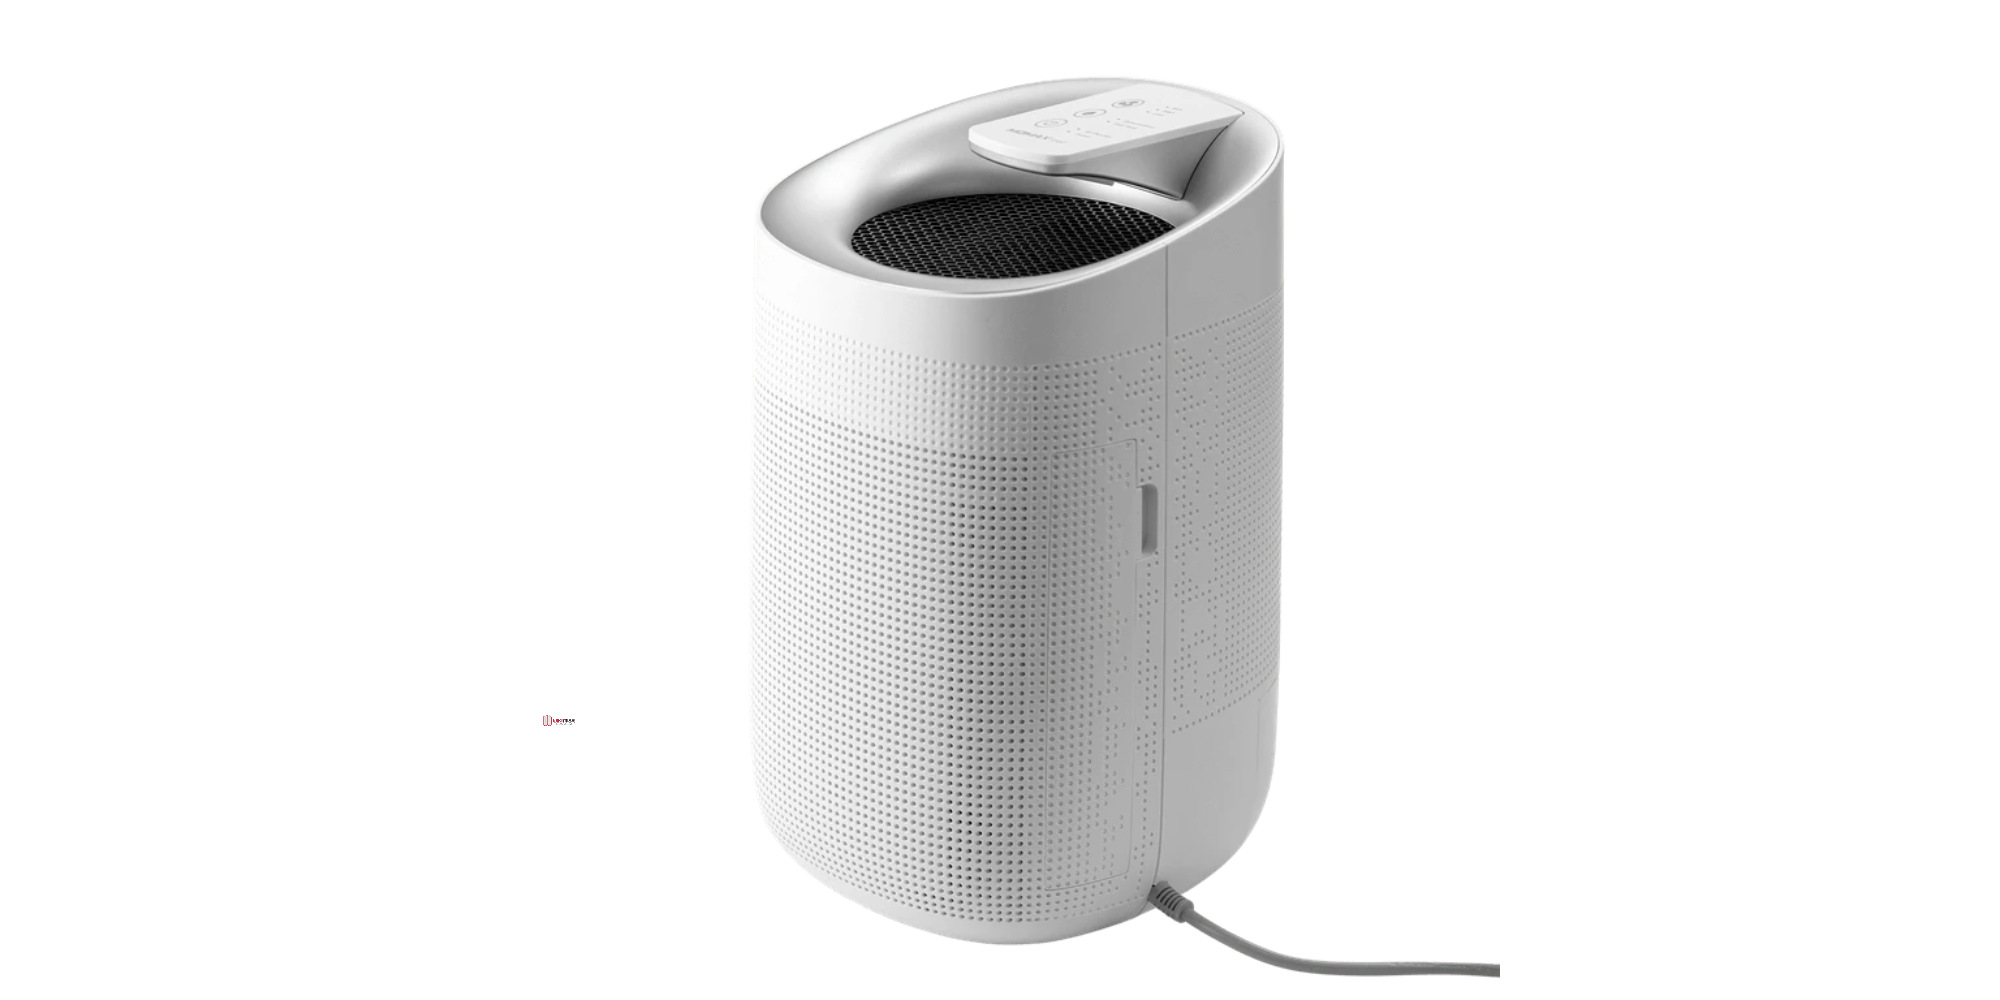 HEALTHY IoT 2IN1 AIR PURIFIER